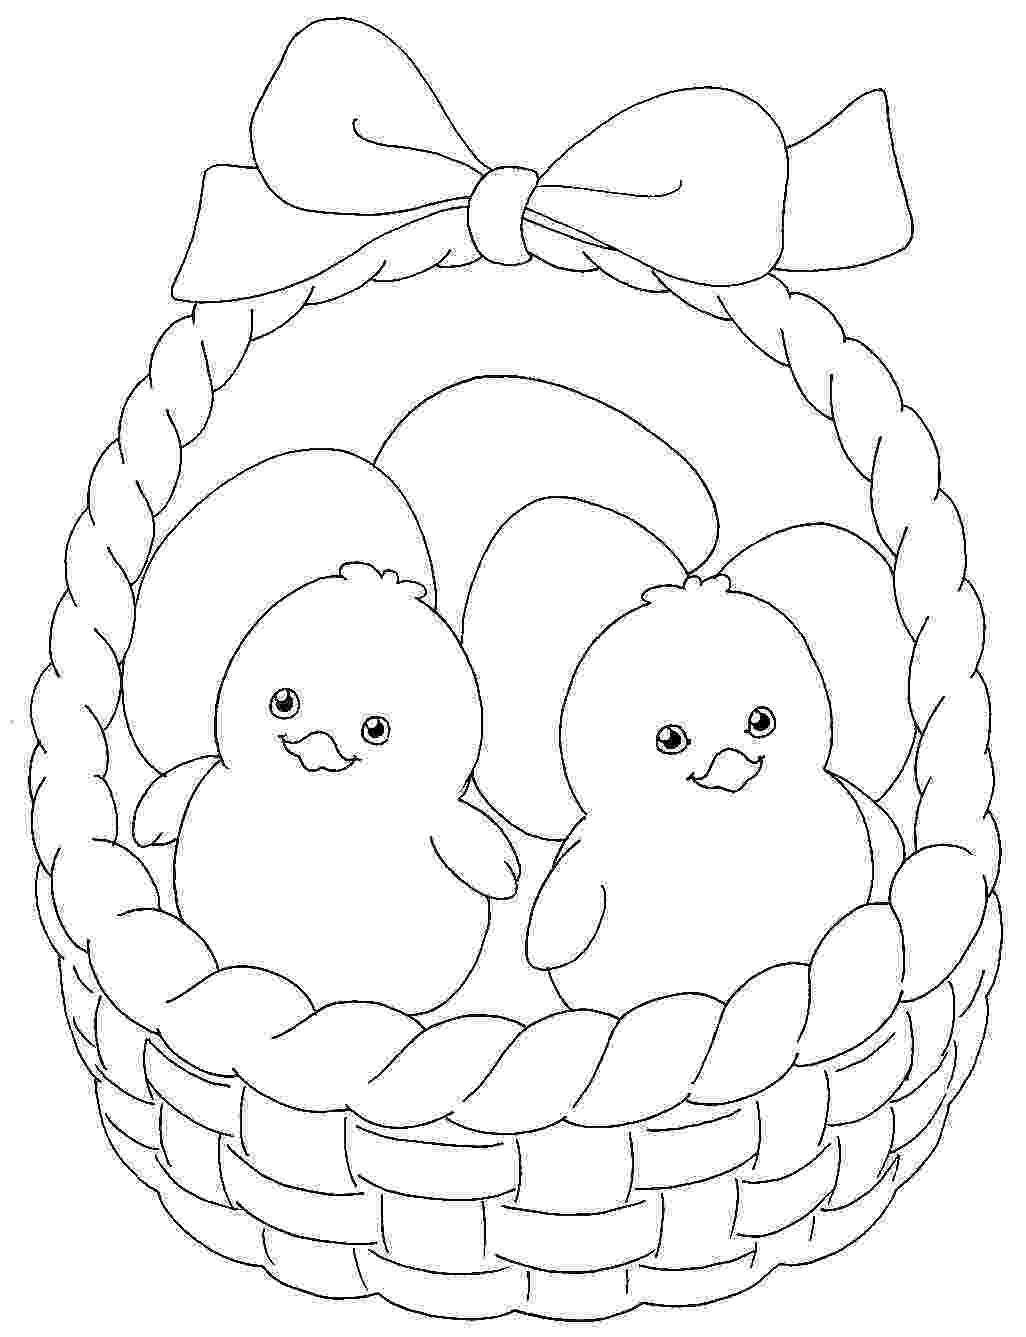 easter chick colouring easter colouring cute easter chicks in a basket to colour easter colouring chick